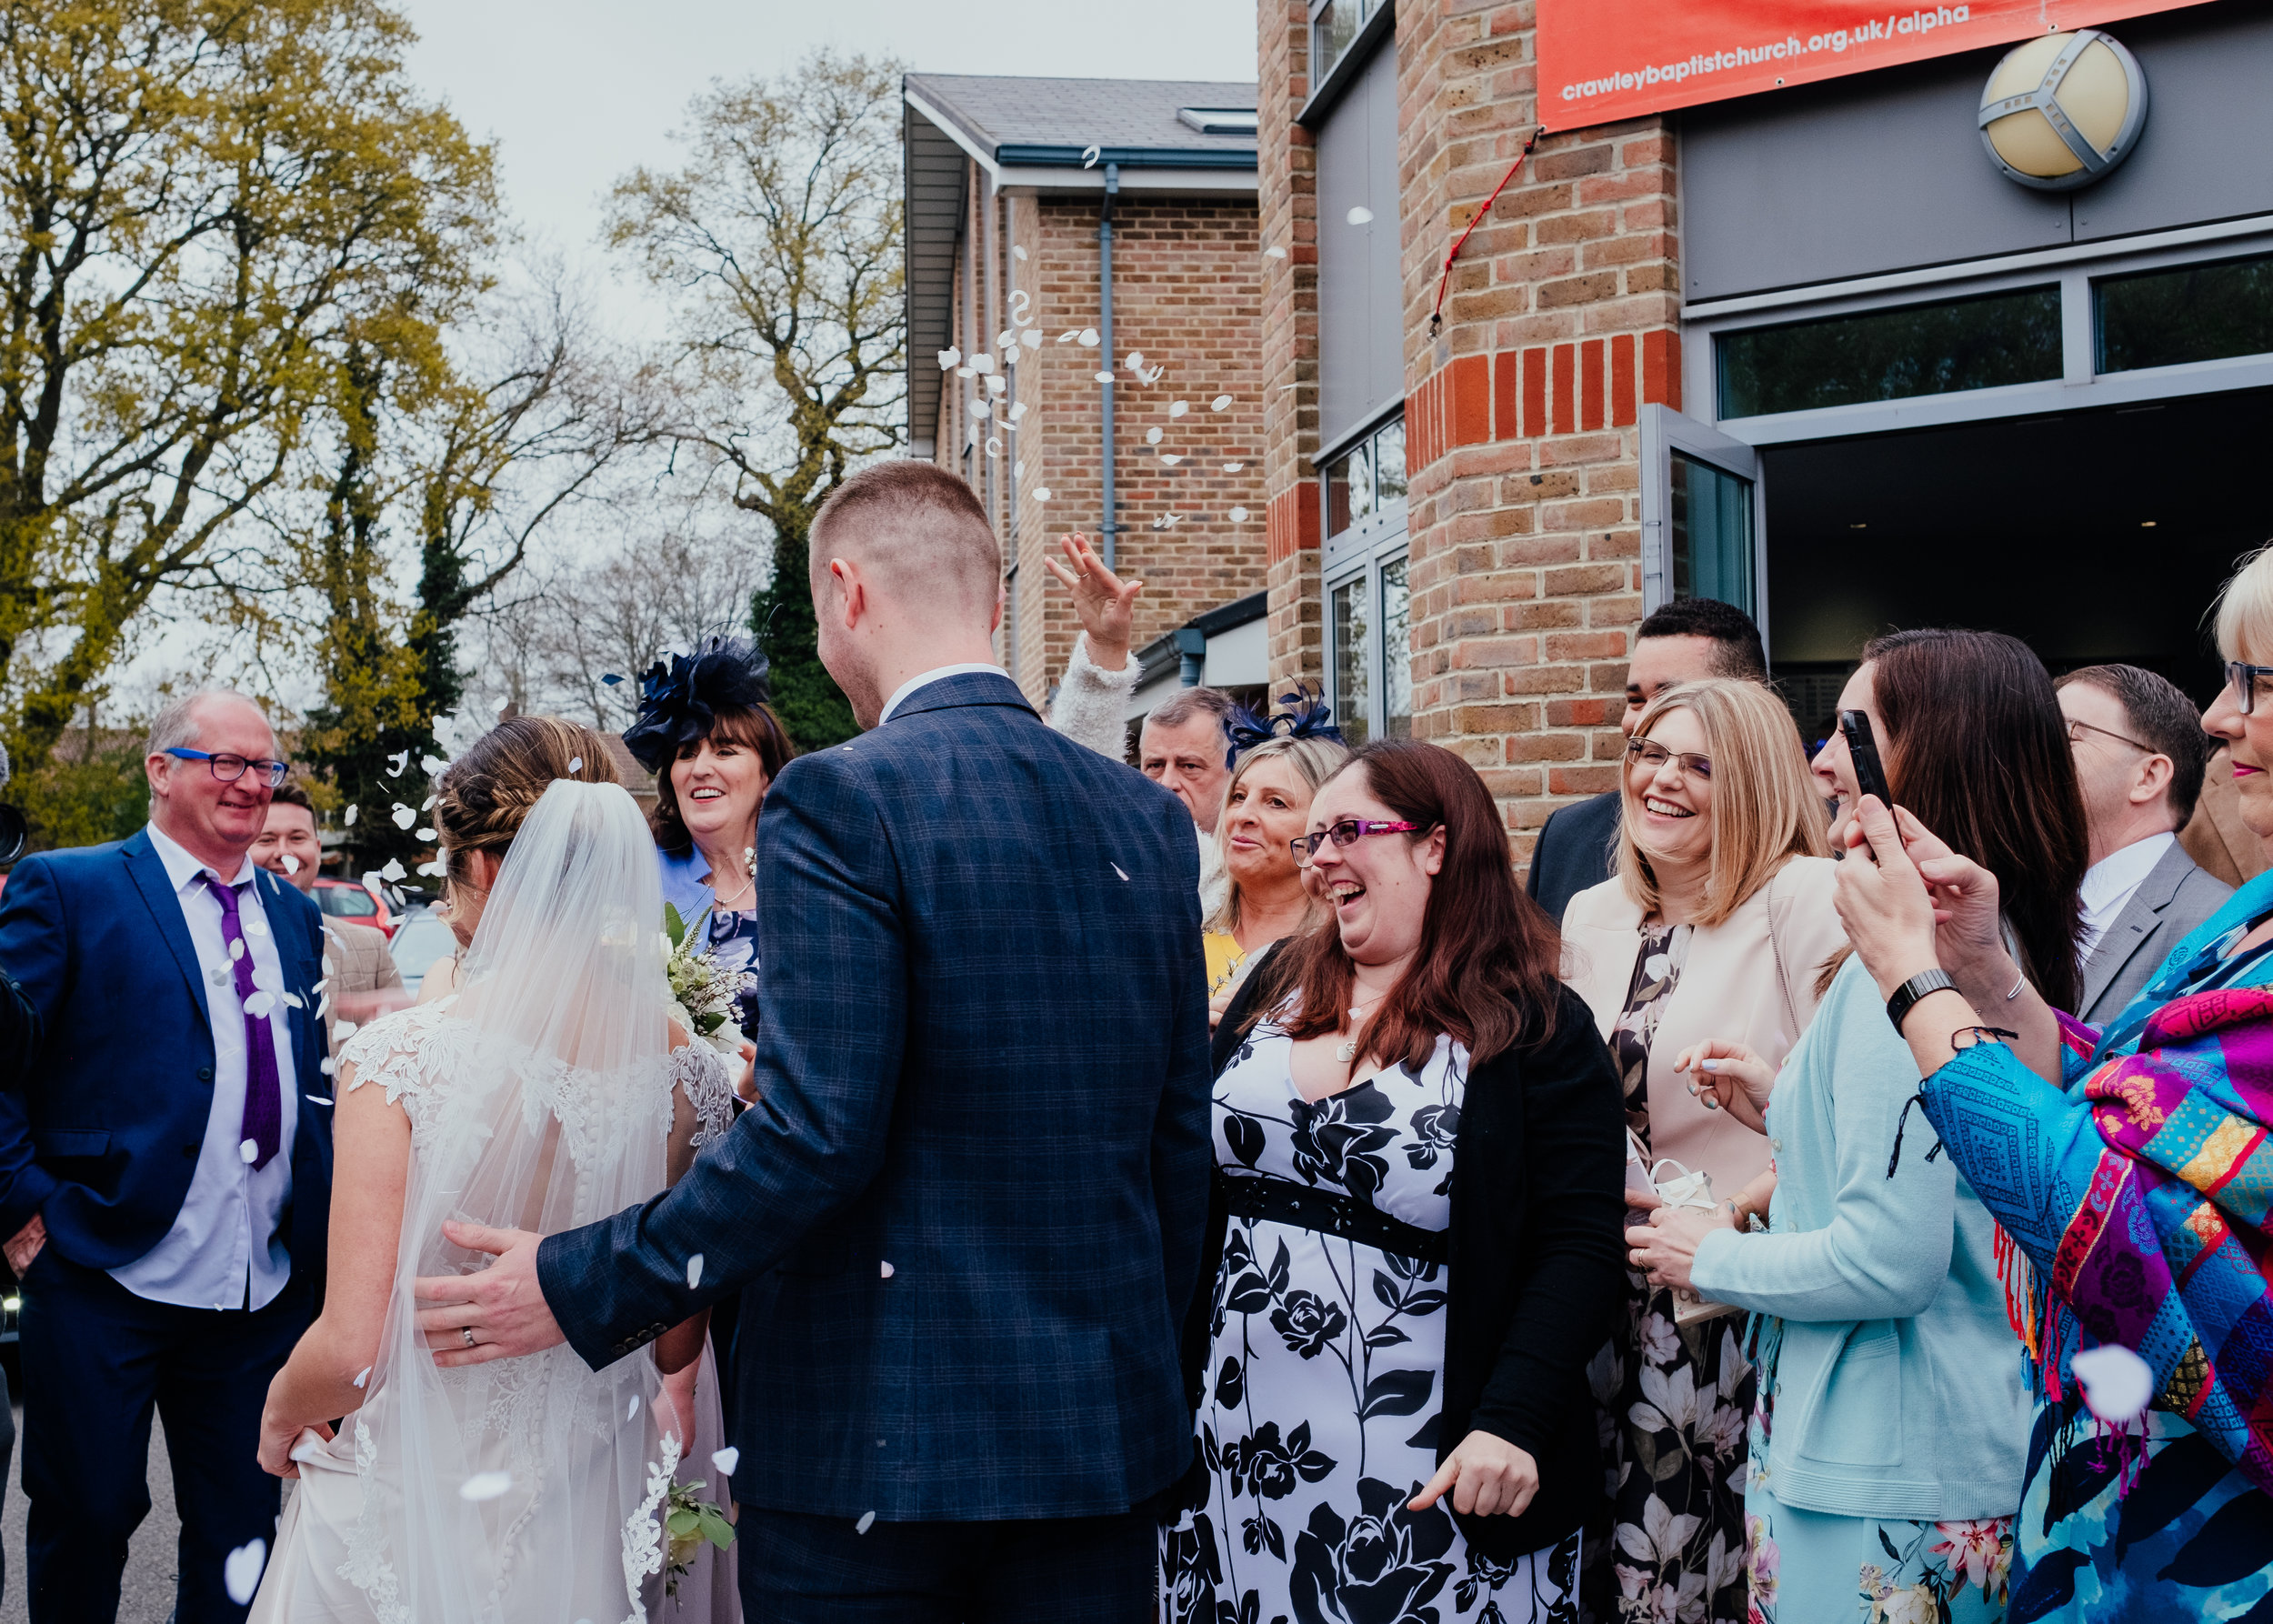 Family and friends throw confetti over Bride and Groom